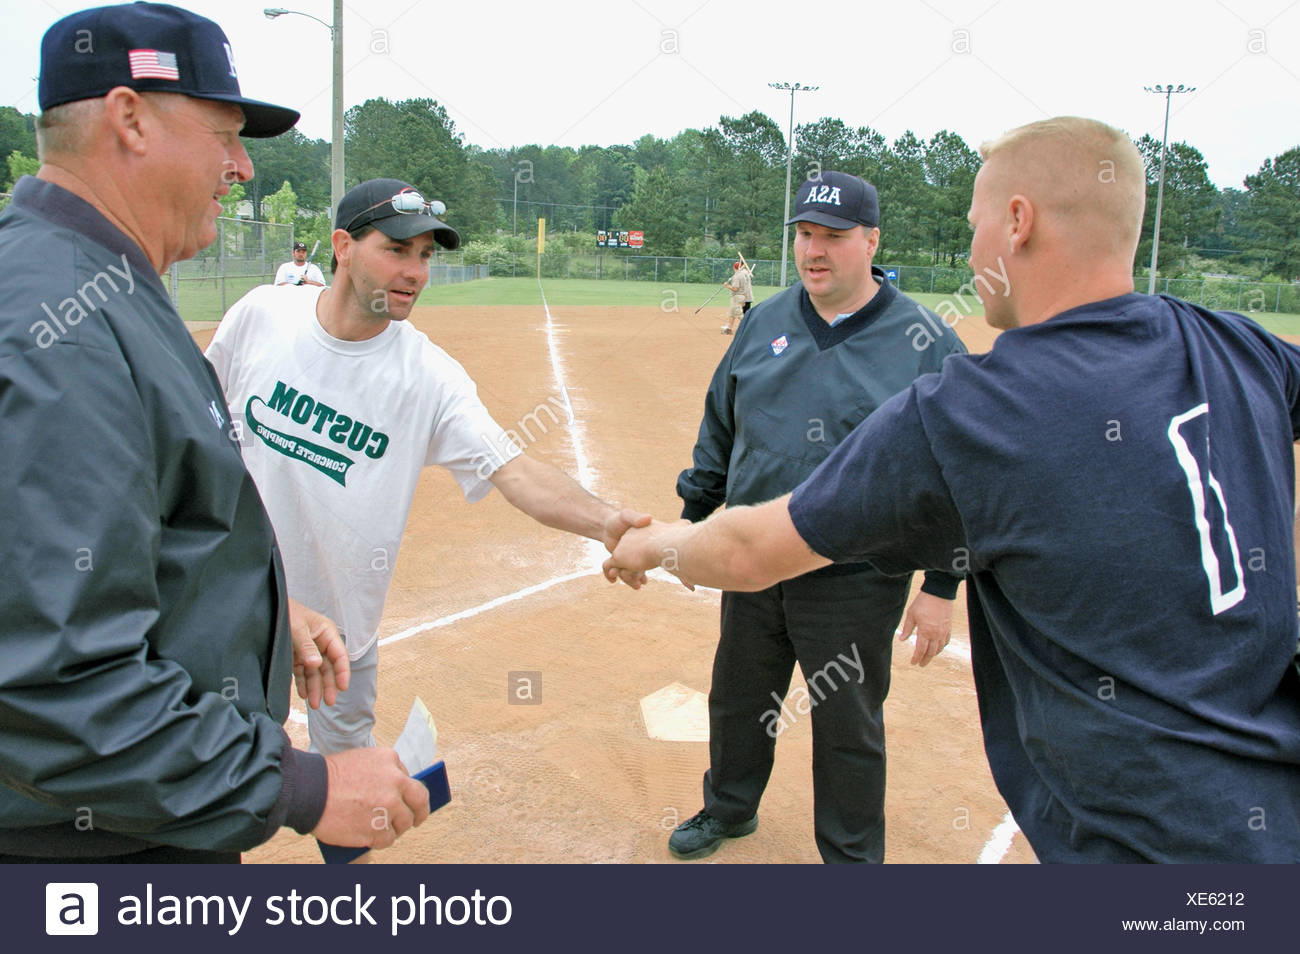 softball umpires for ASA in the US during games and in